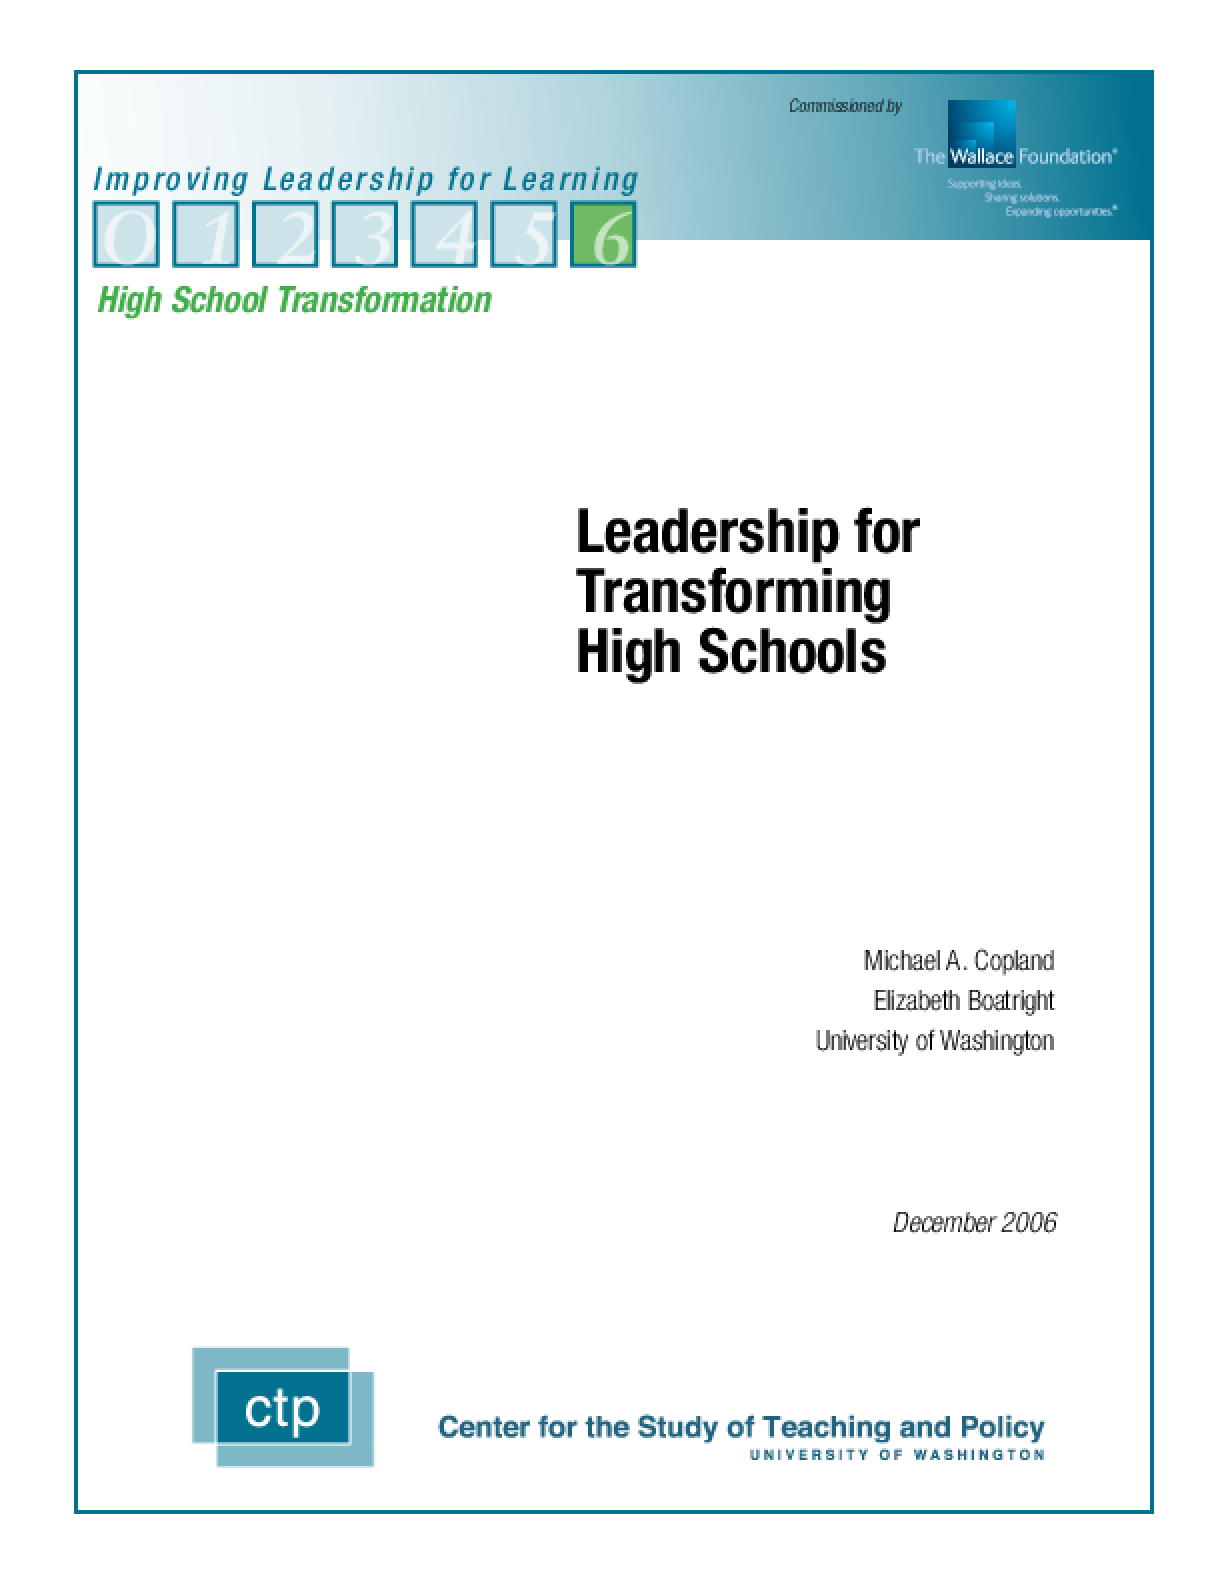 Leadership for Transforming High Schools